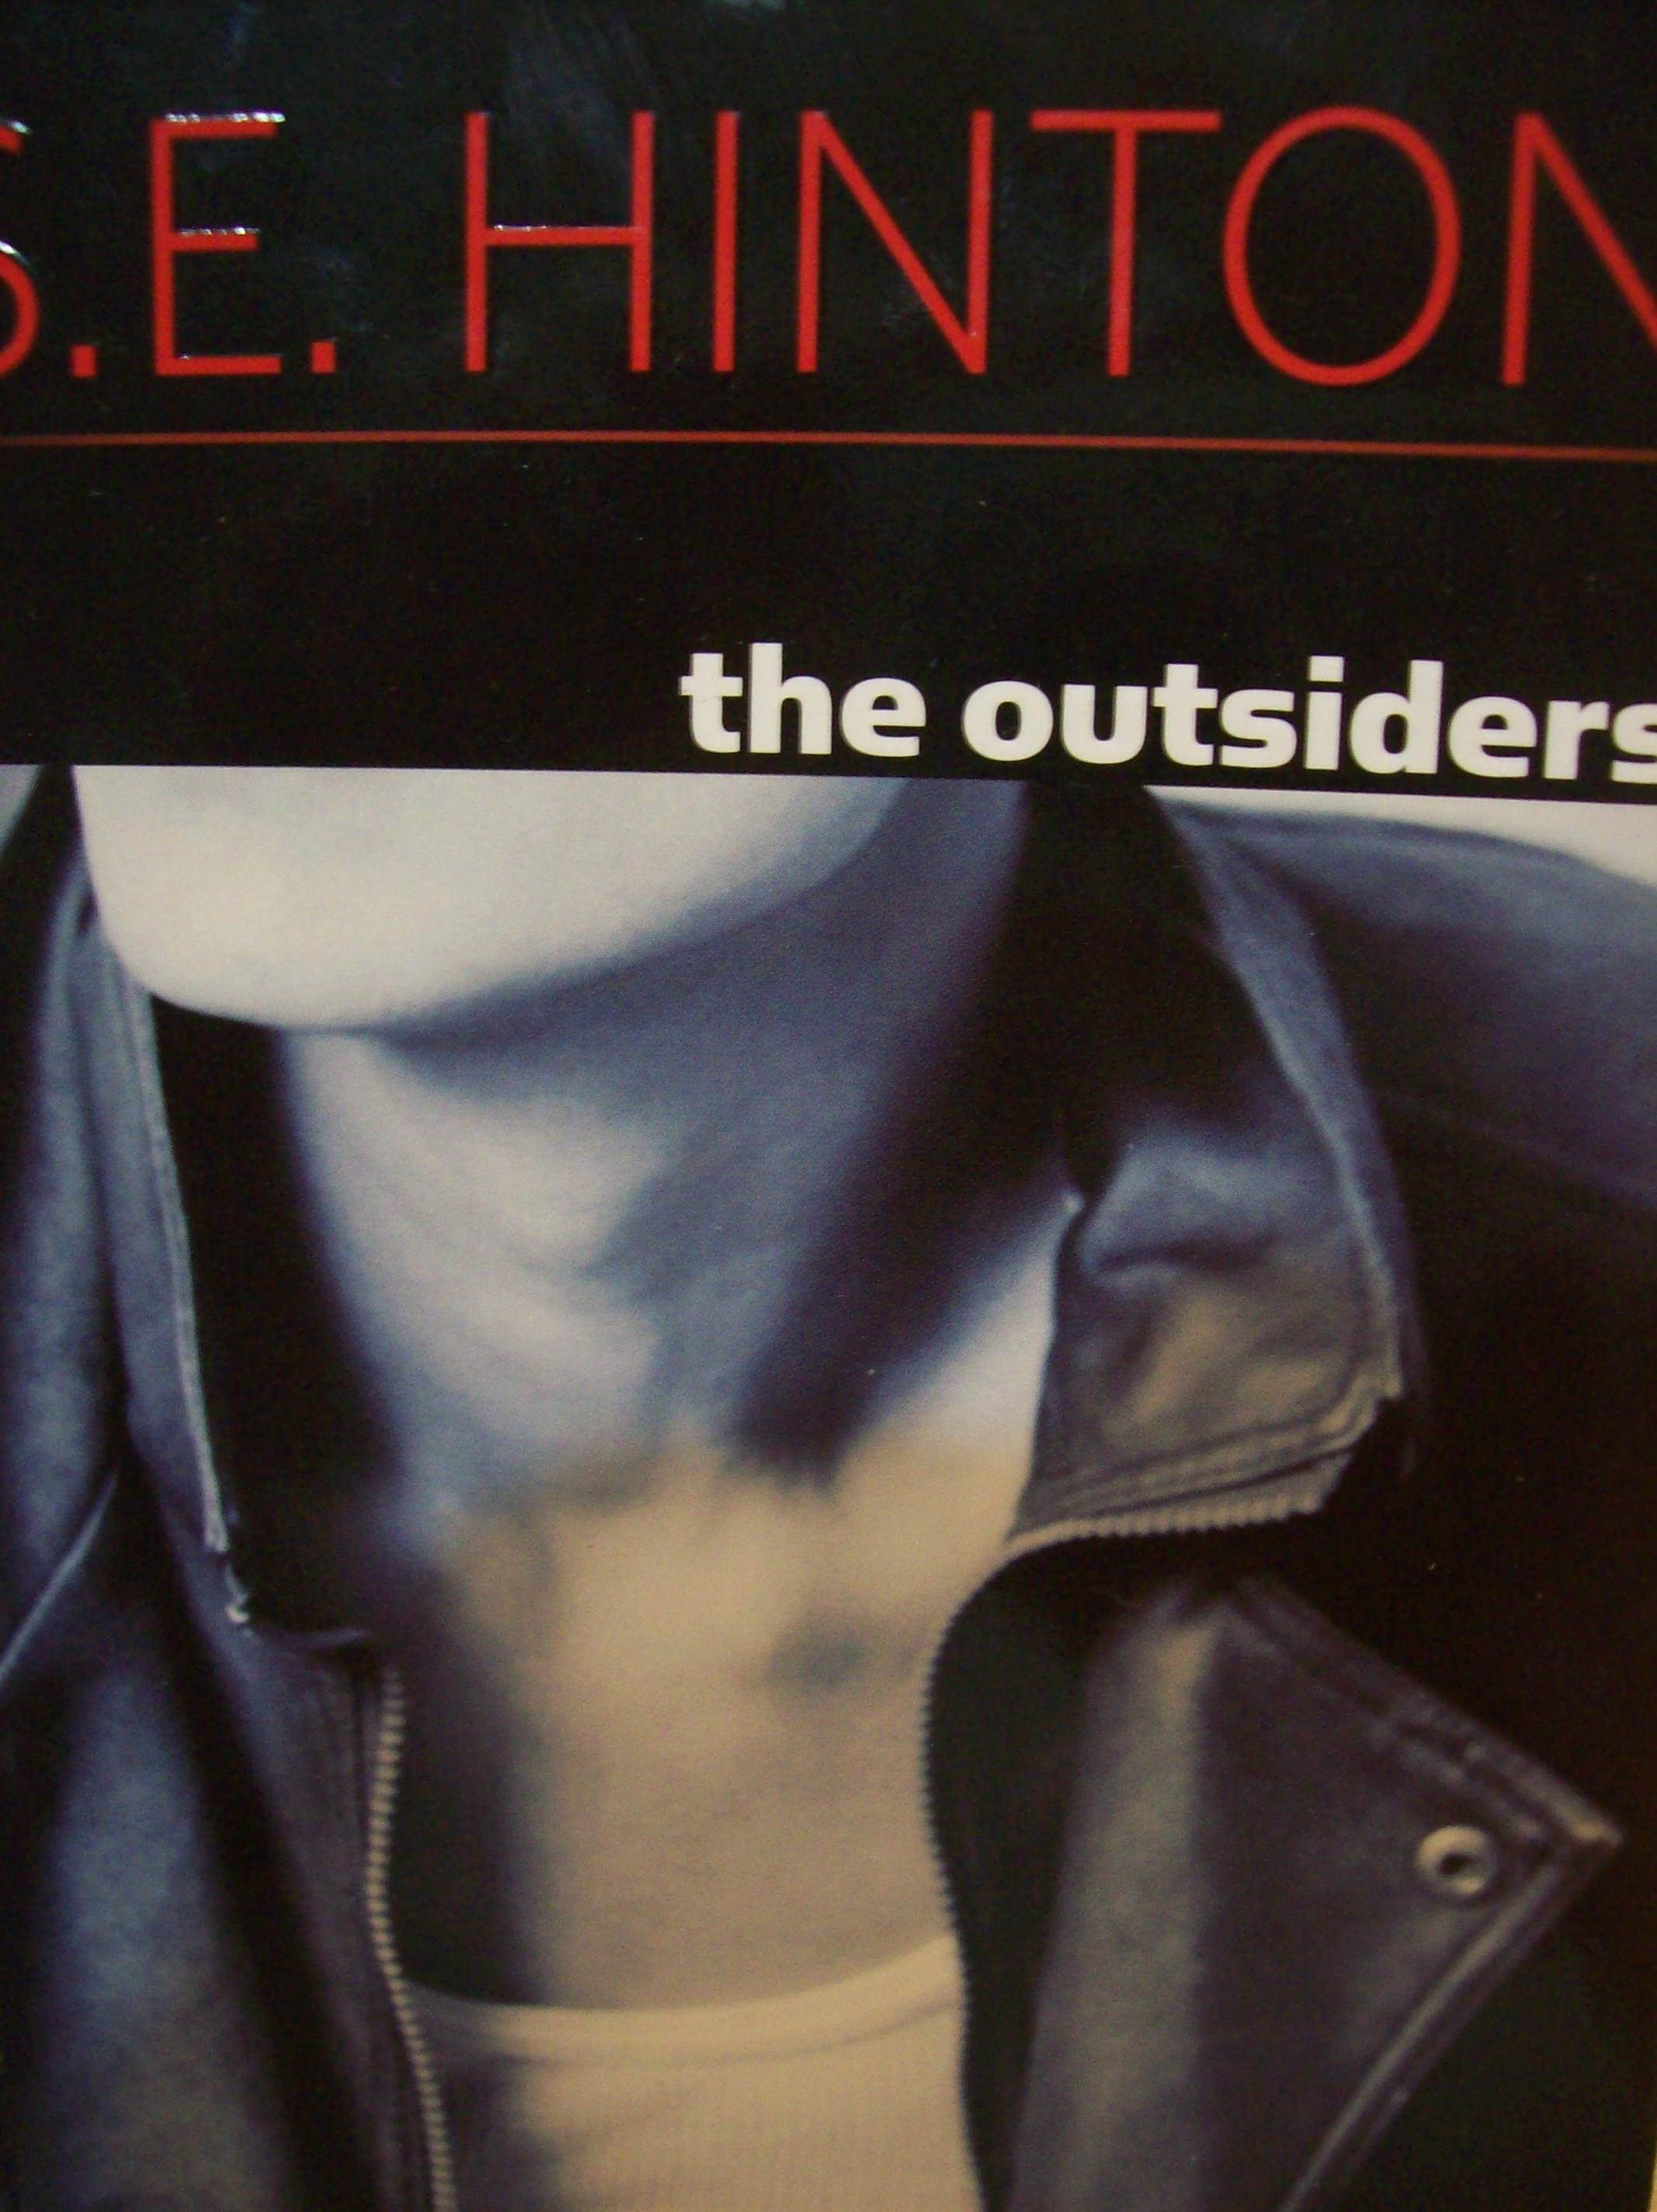 Details of The Outsiders